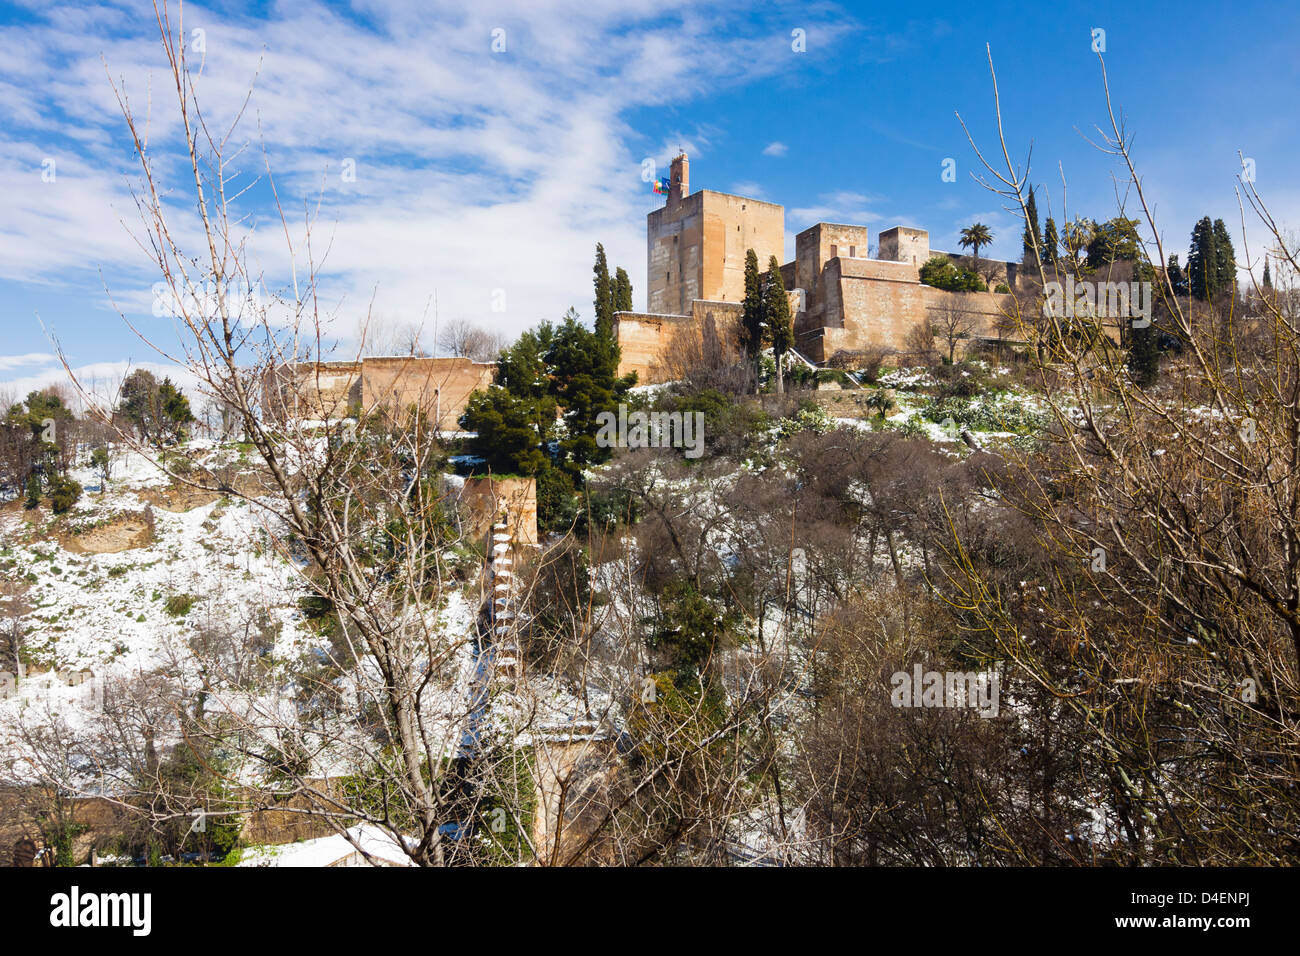 Snowcapped Alhambra palace. Granada, Spain - Stock Image